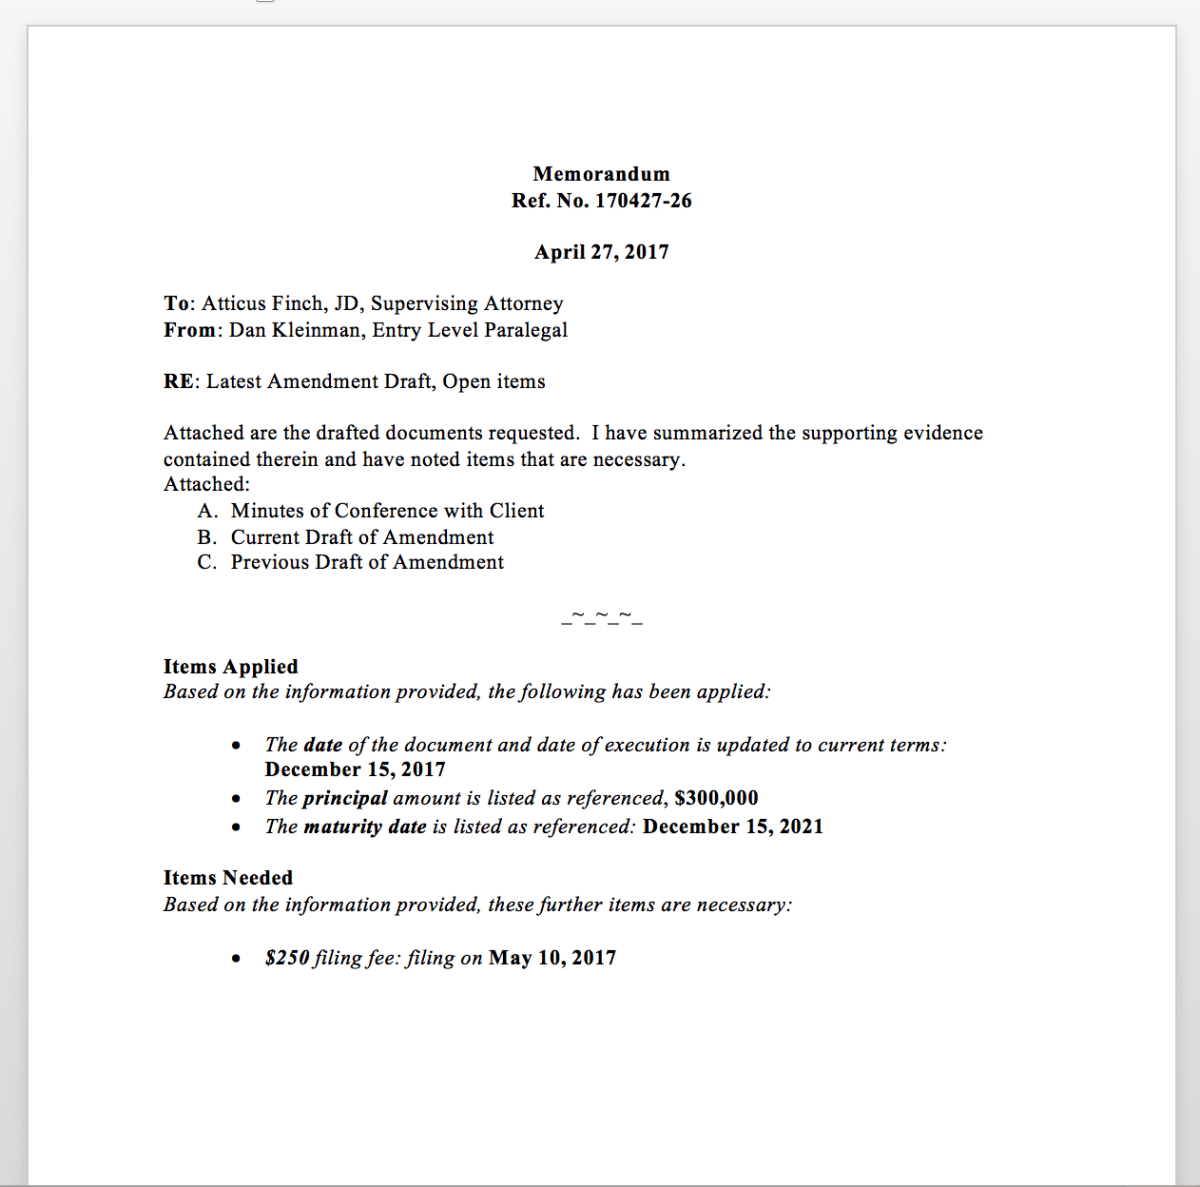 executive summary memo